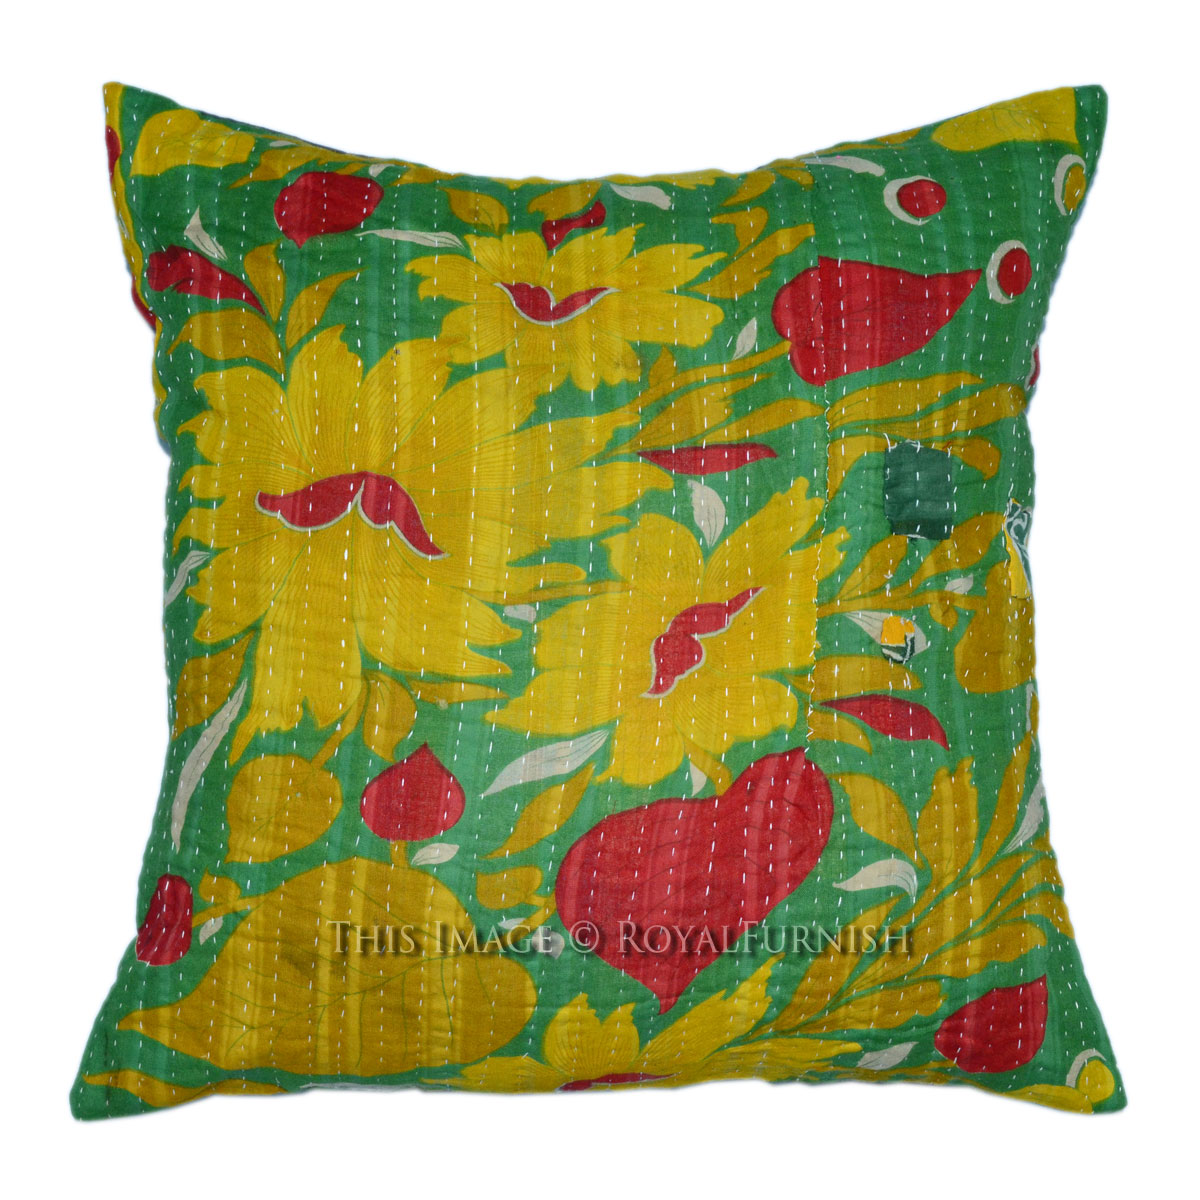 Vintage Decorative Throw Pillows : 40x40 Cm. Decorative & Accent Vintage Kantha Throw Pillow Case - RoyalFurnish.com